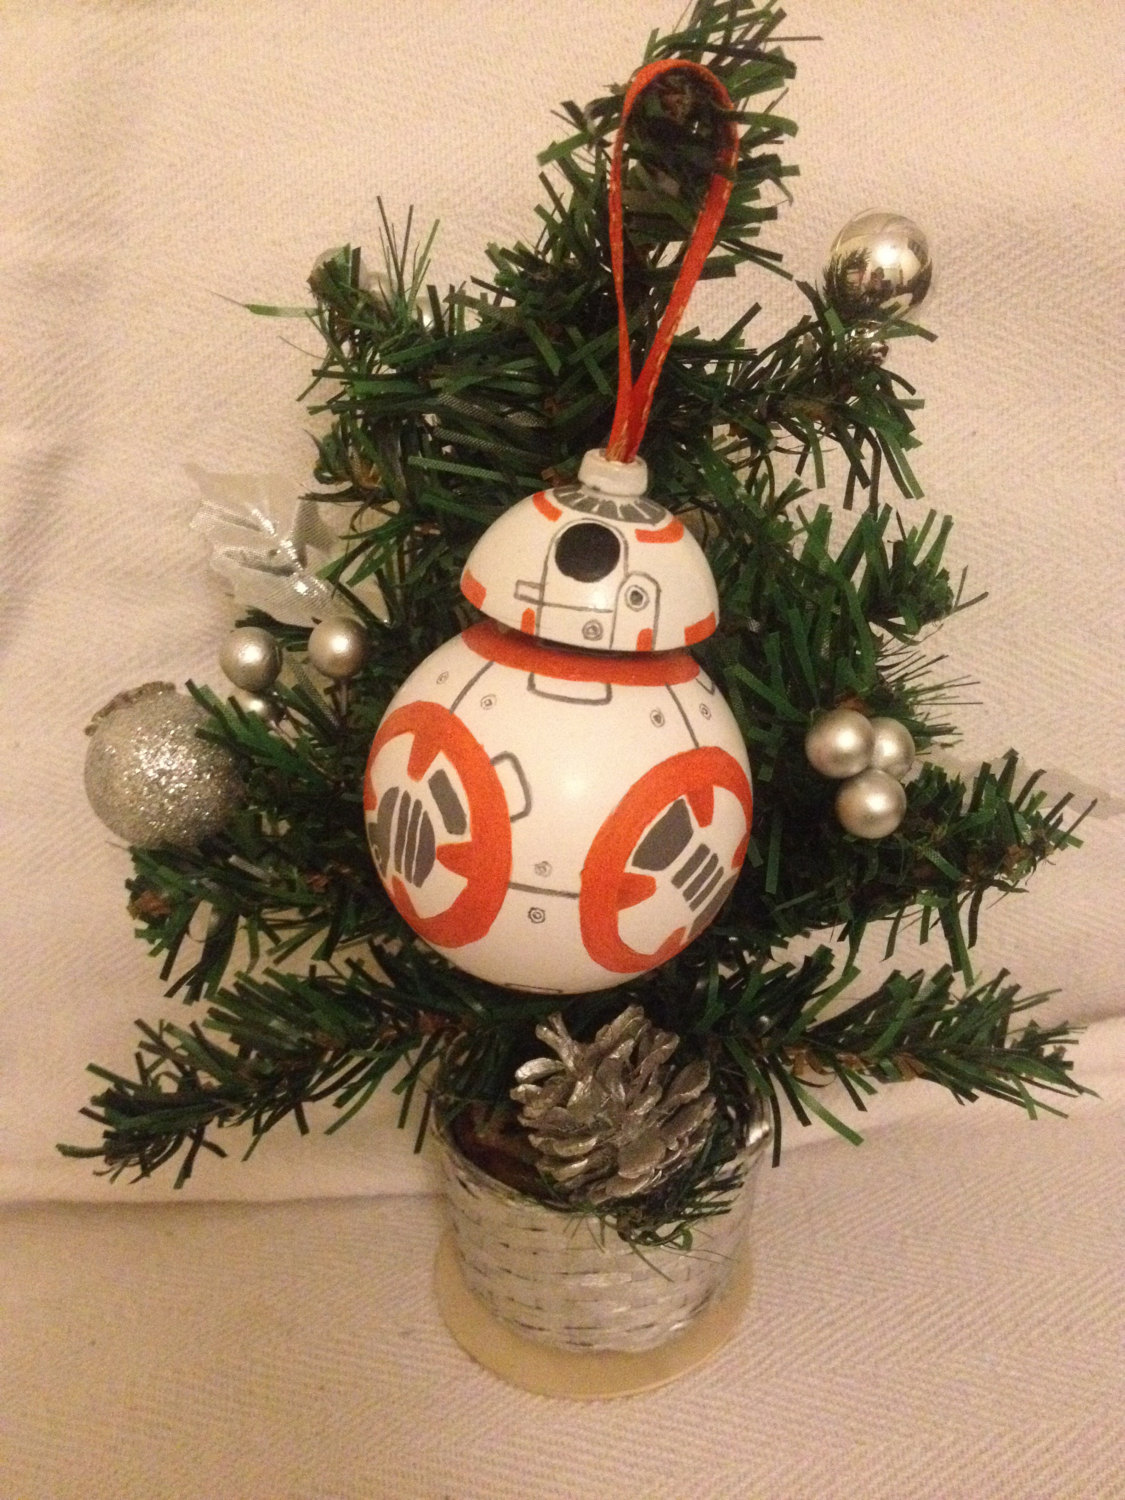 Star Wars Christmas Trees (8)